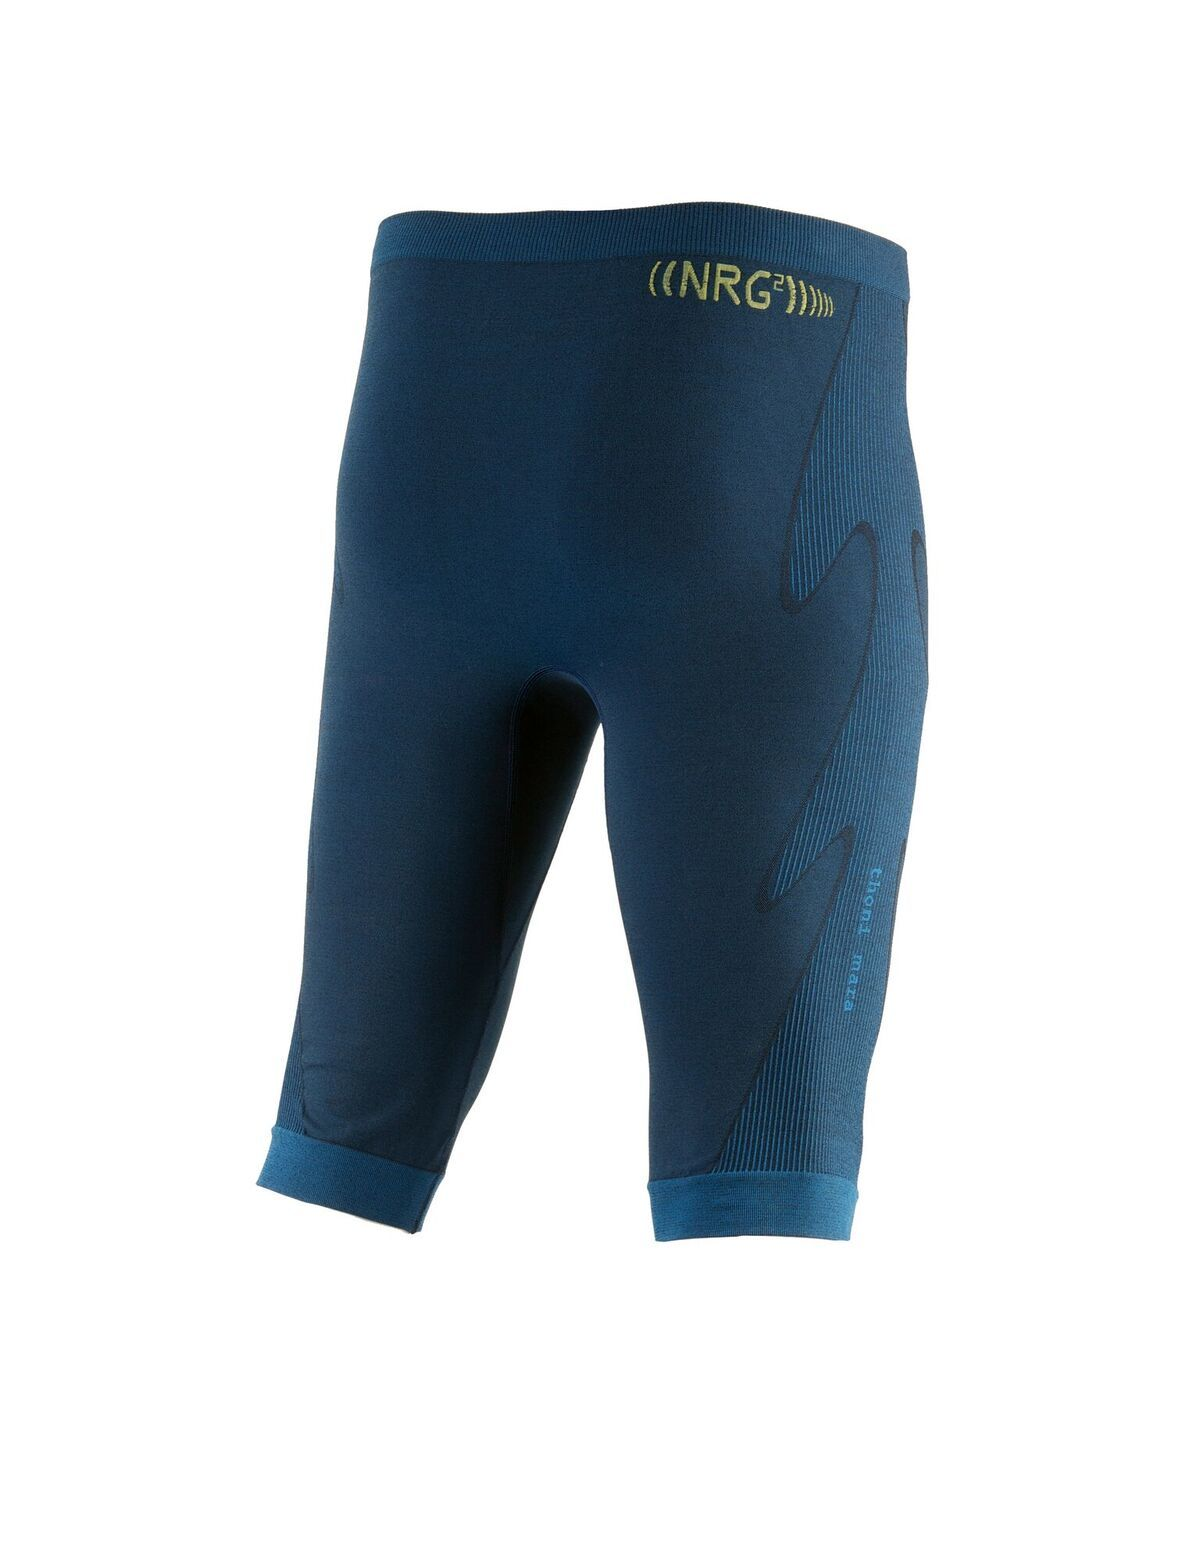 Thonimara NRG Mid-Tight in Blau